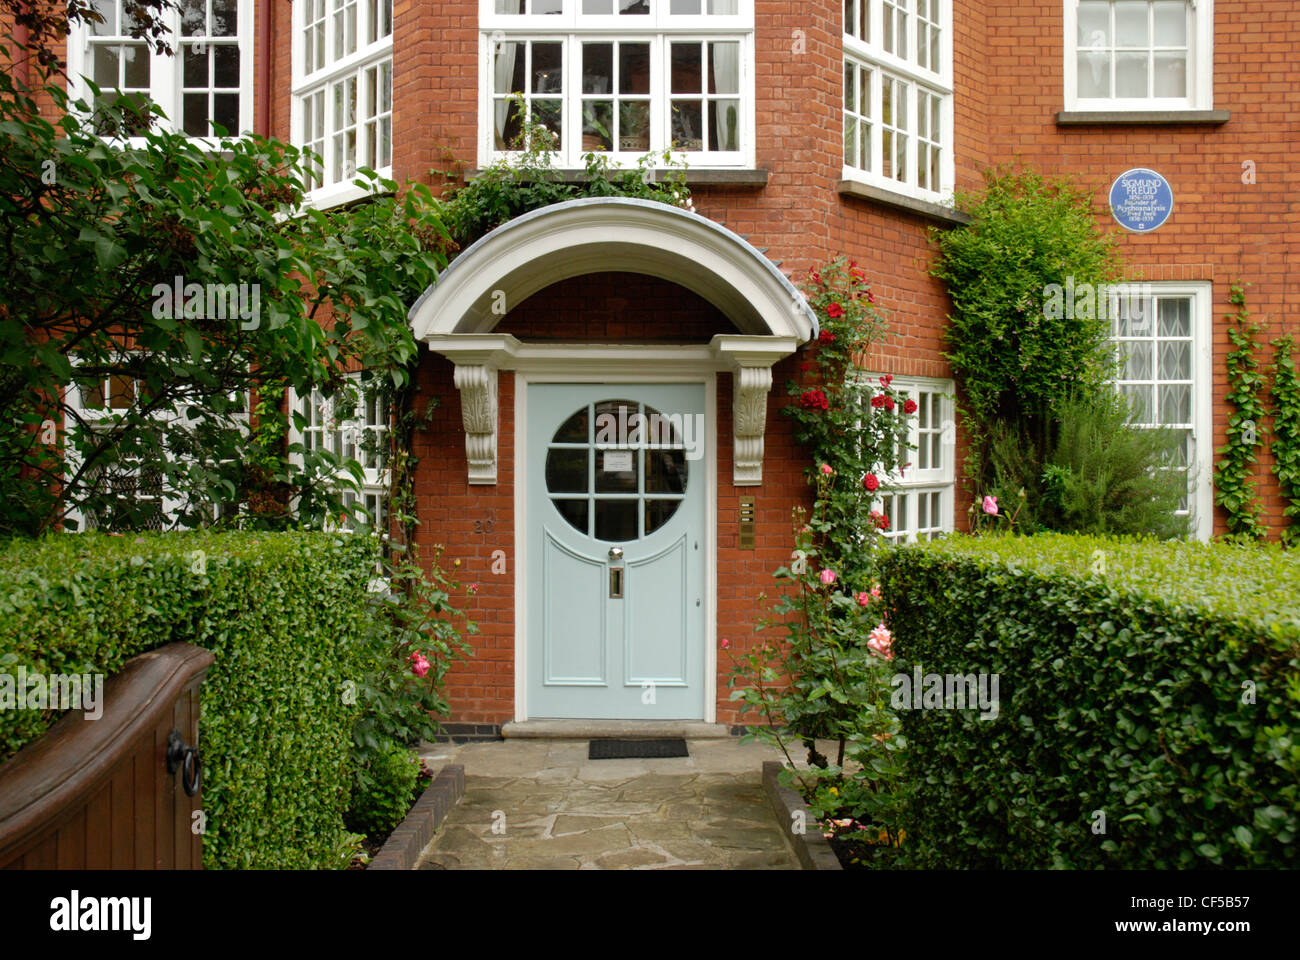 The facade of the Sigmund Freud Museum in Maresfield Gardens. - Stock Image